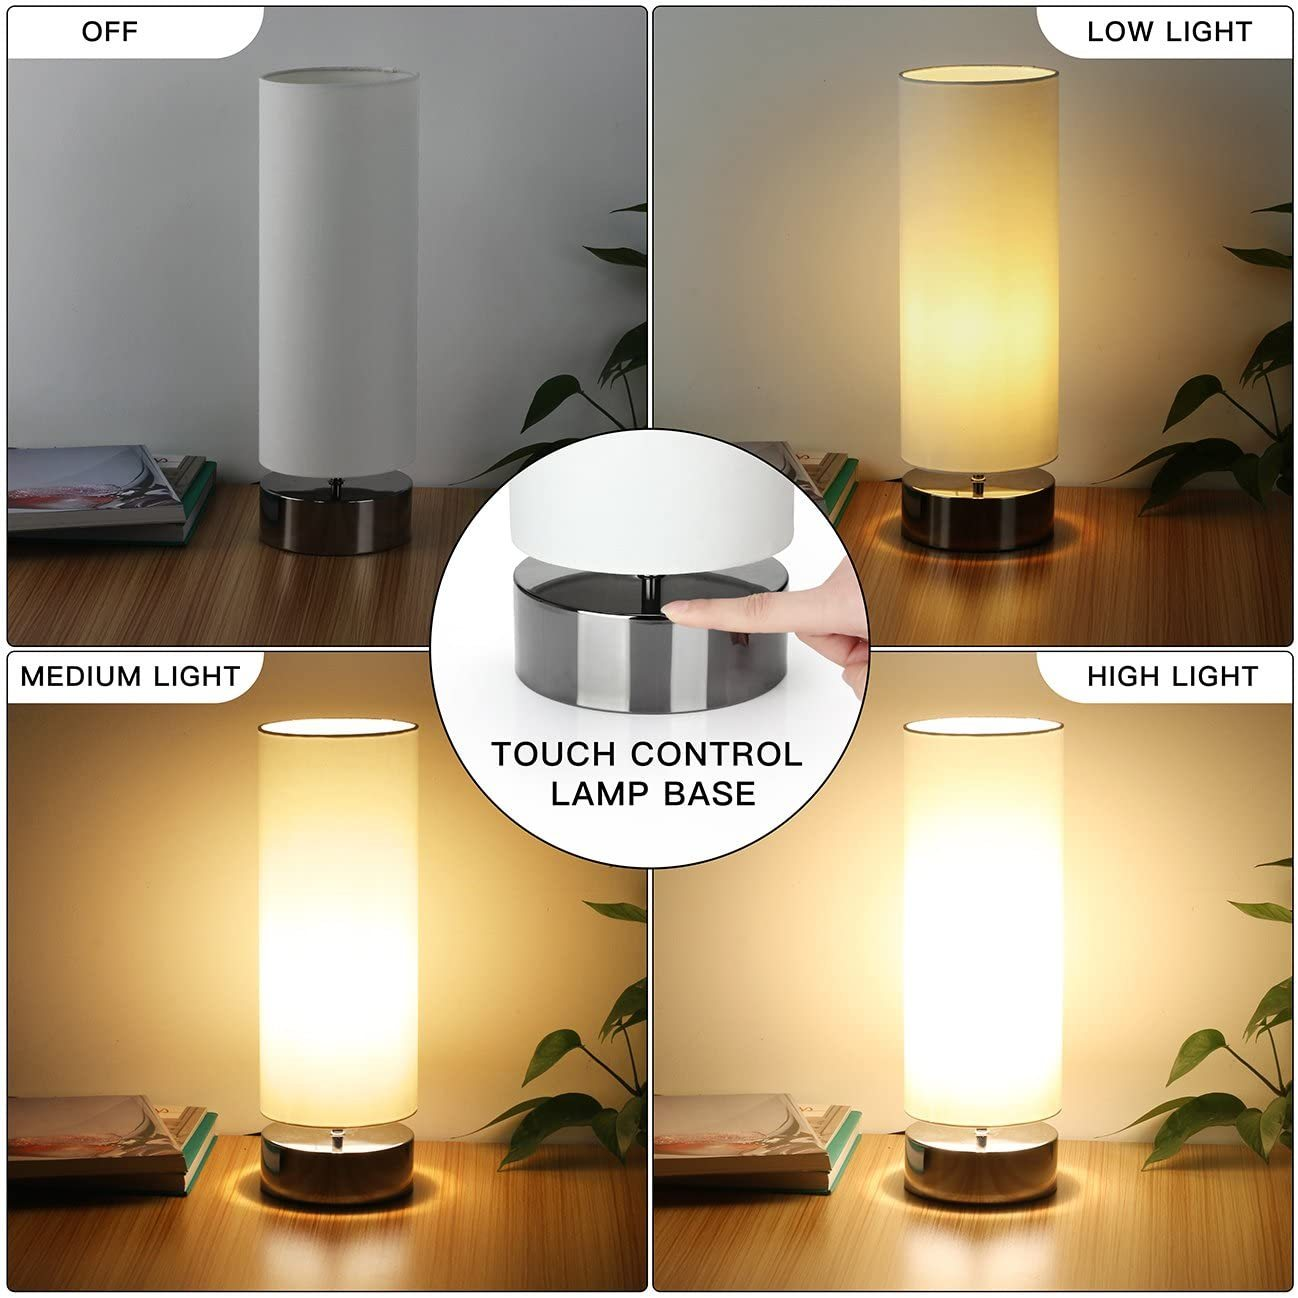 touch control table lamp bedside minimalist desk lamp